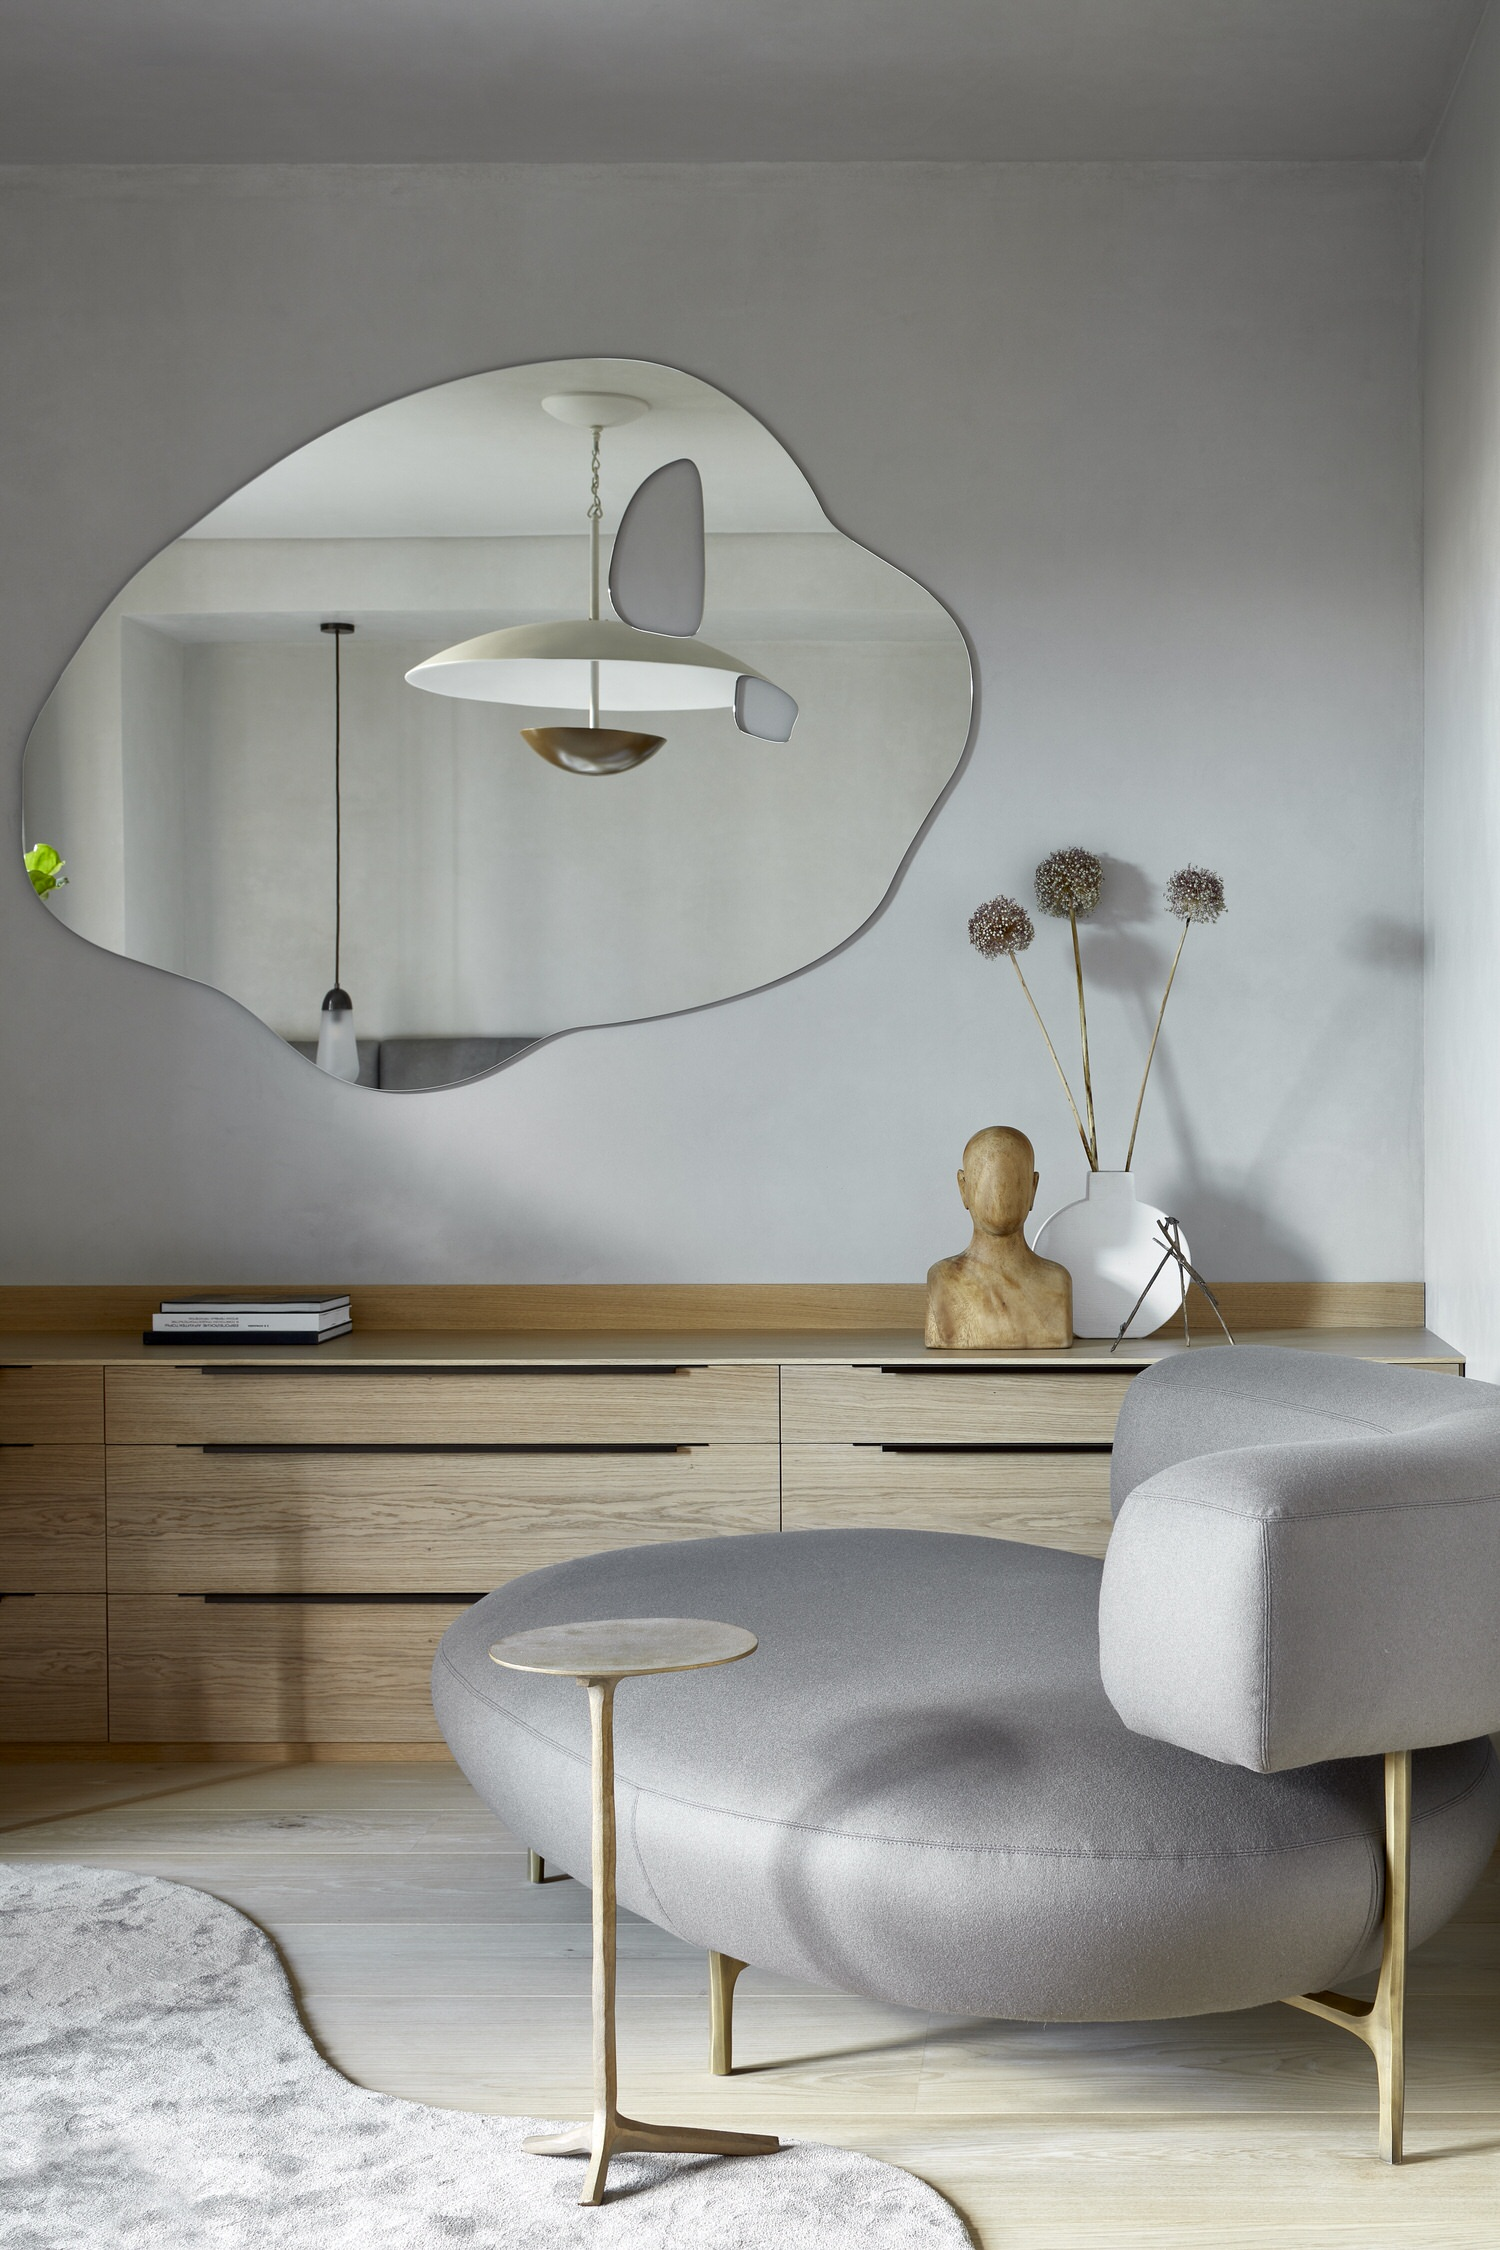 Workshop Studio, Moscow Apartment, Interior Design, Photo Sergey Ananiev | Yellowtrace